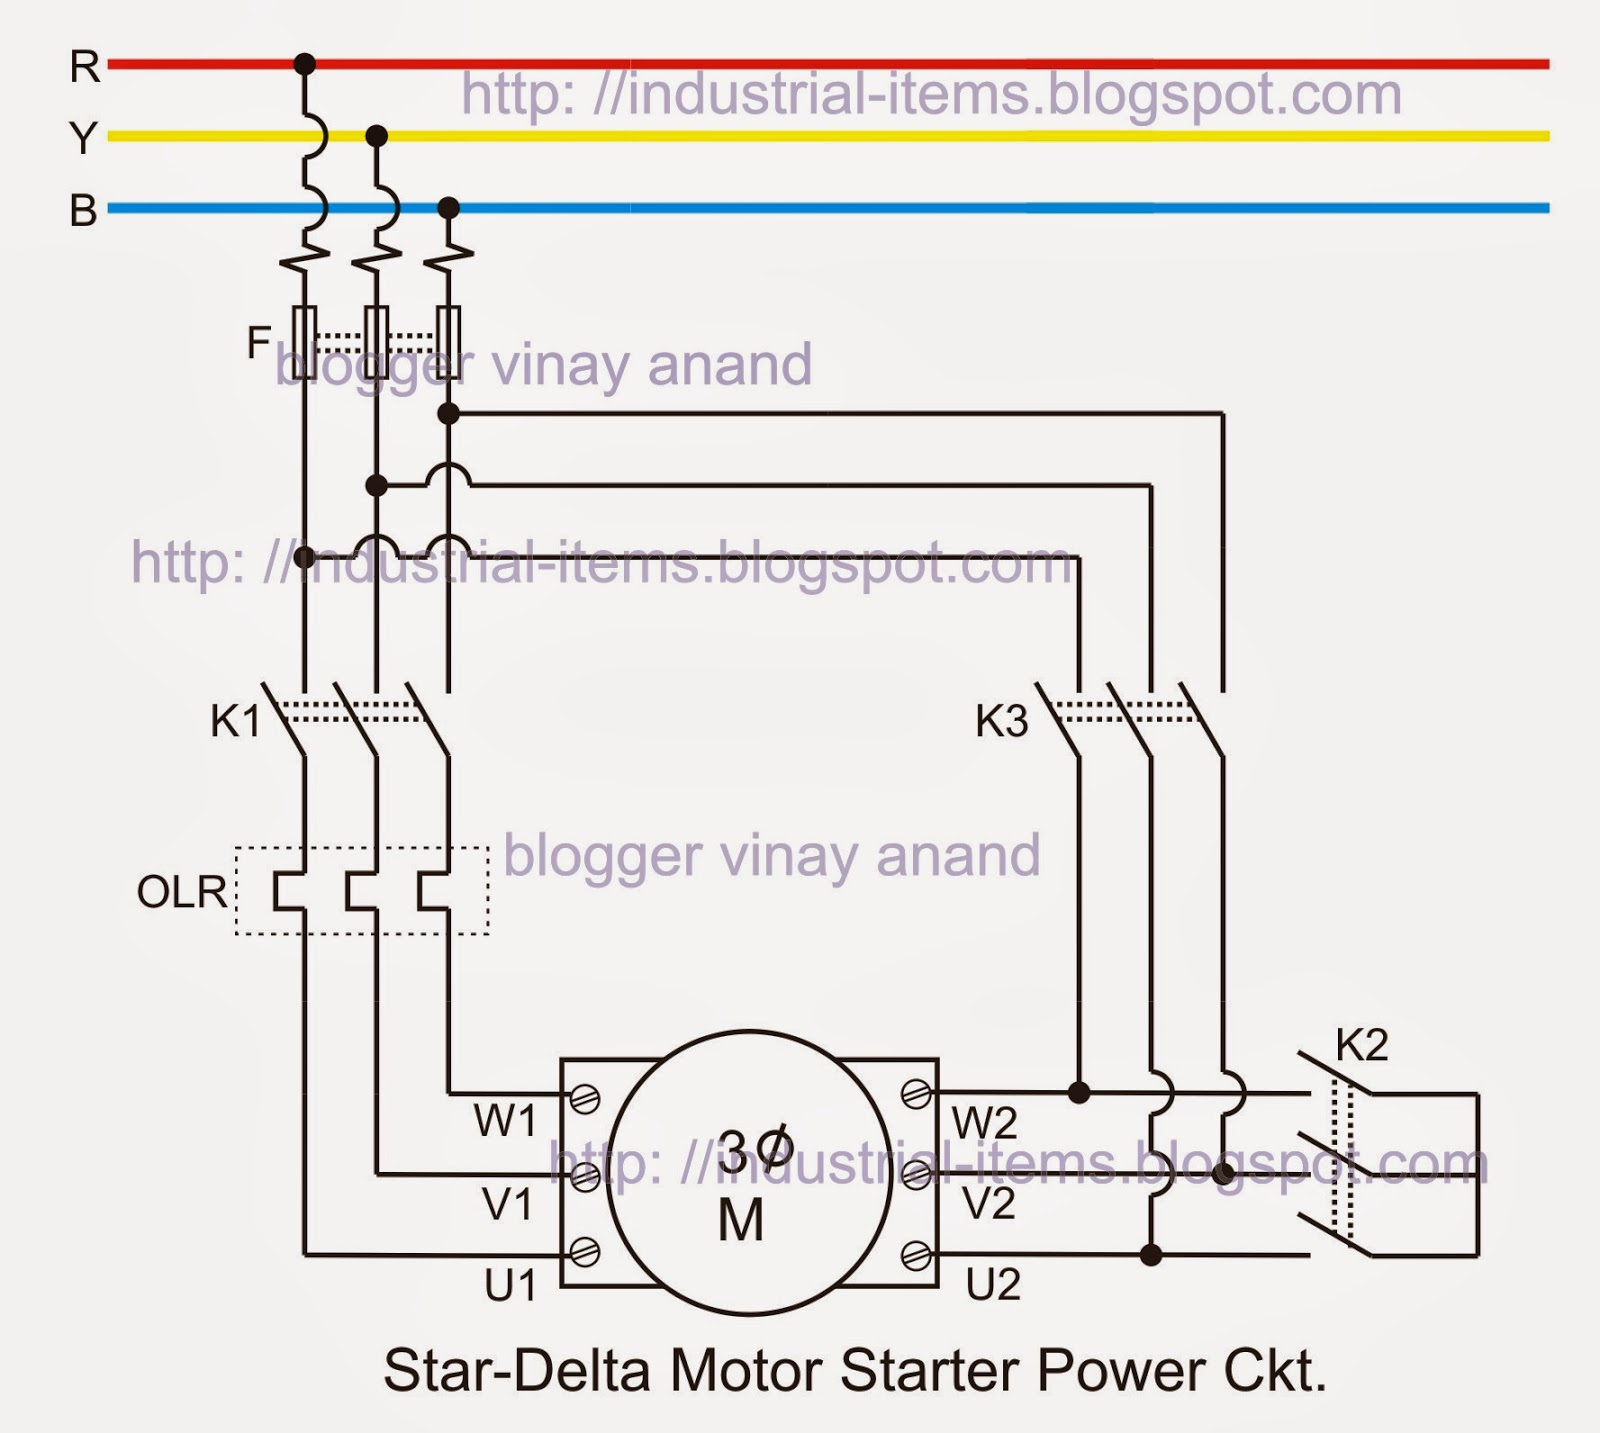 century ac wiring car wiring diagram download tinyuniverse co Ac Electric Motor Wiring Diagram 10 pole motor wiring diagram on 10 images free download wiring century ac wiring 10 pole motor wiring diagram 7 century motors wiring diagram wire colors ac ac electric motor wiring diagram